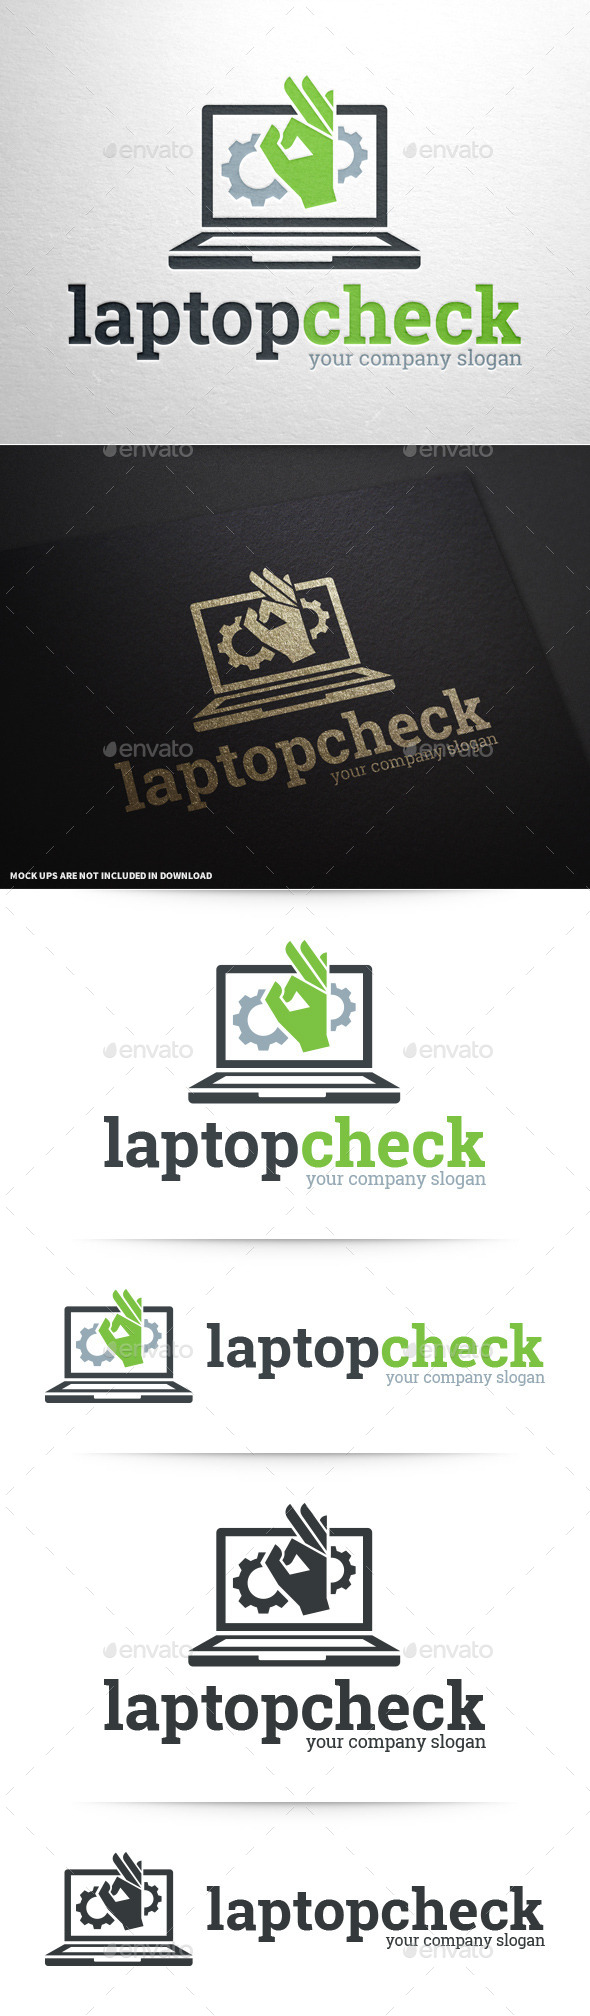 Laptop Check Logo Template - Objects Logo Templates